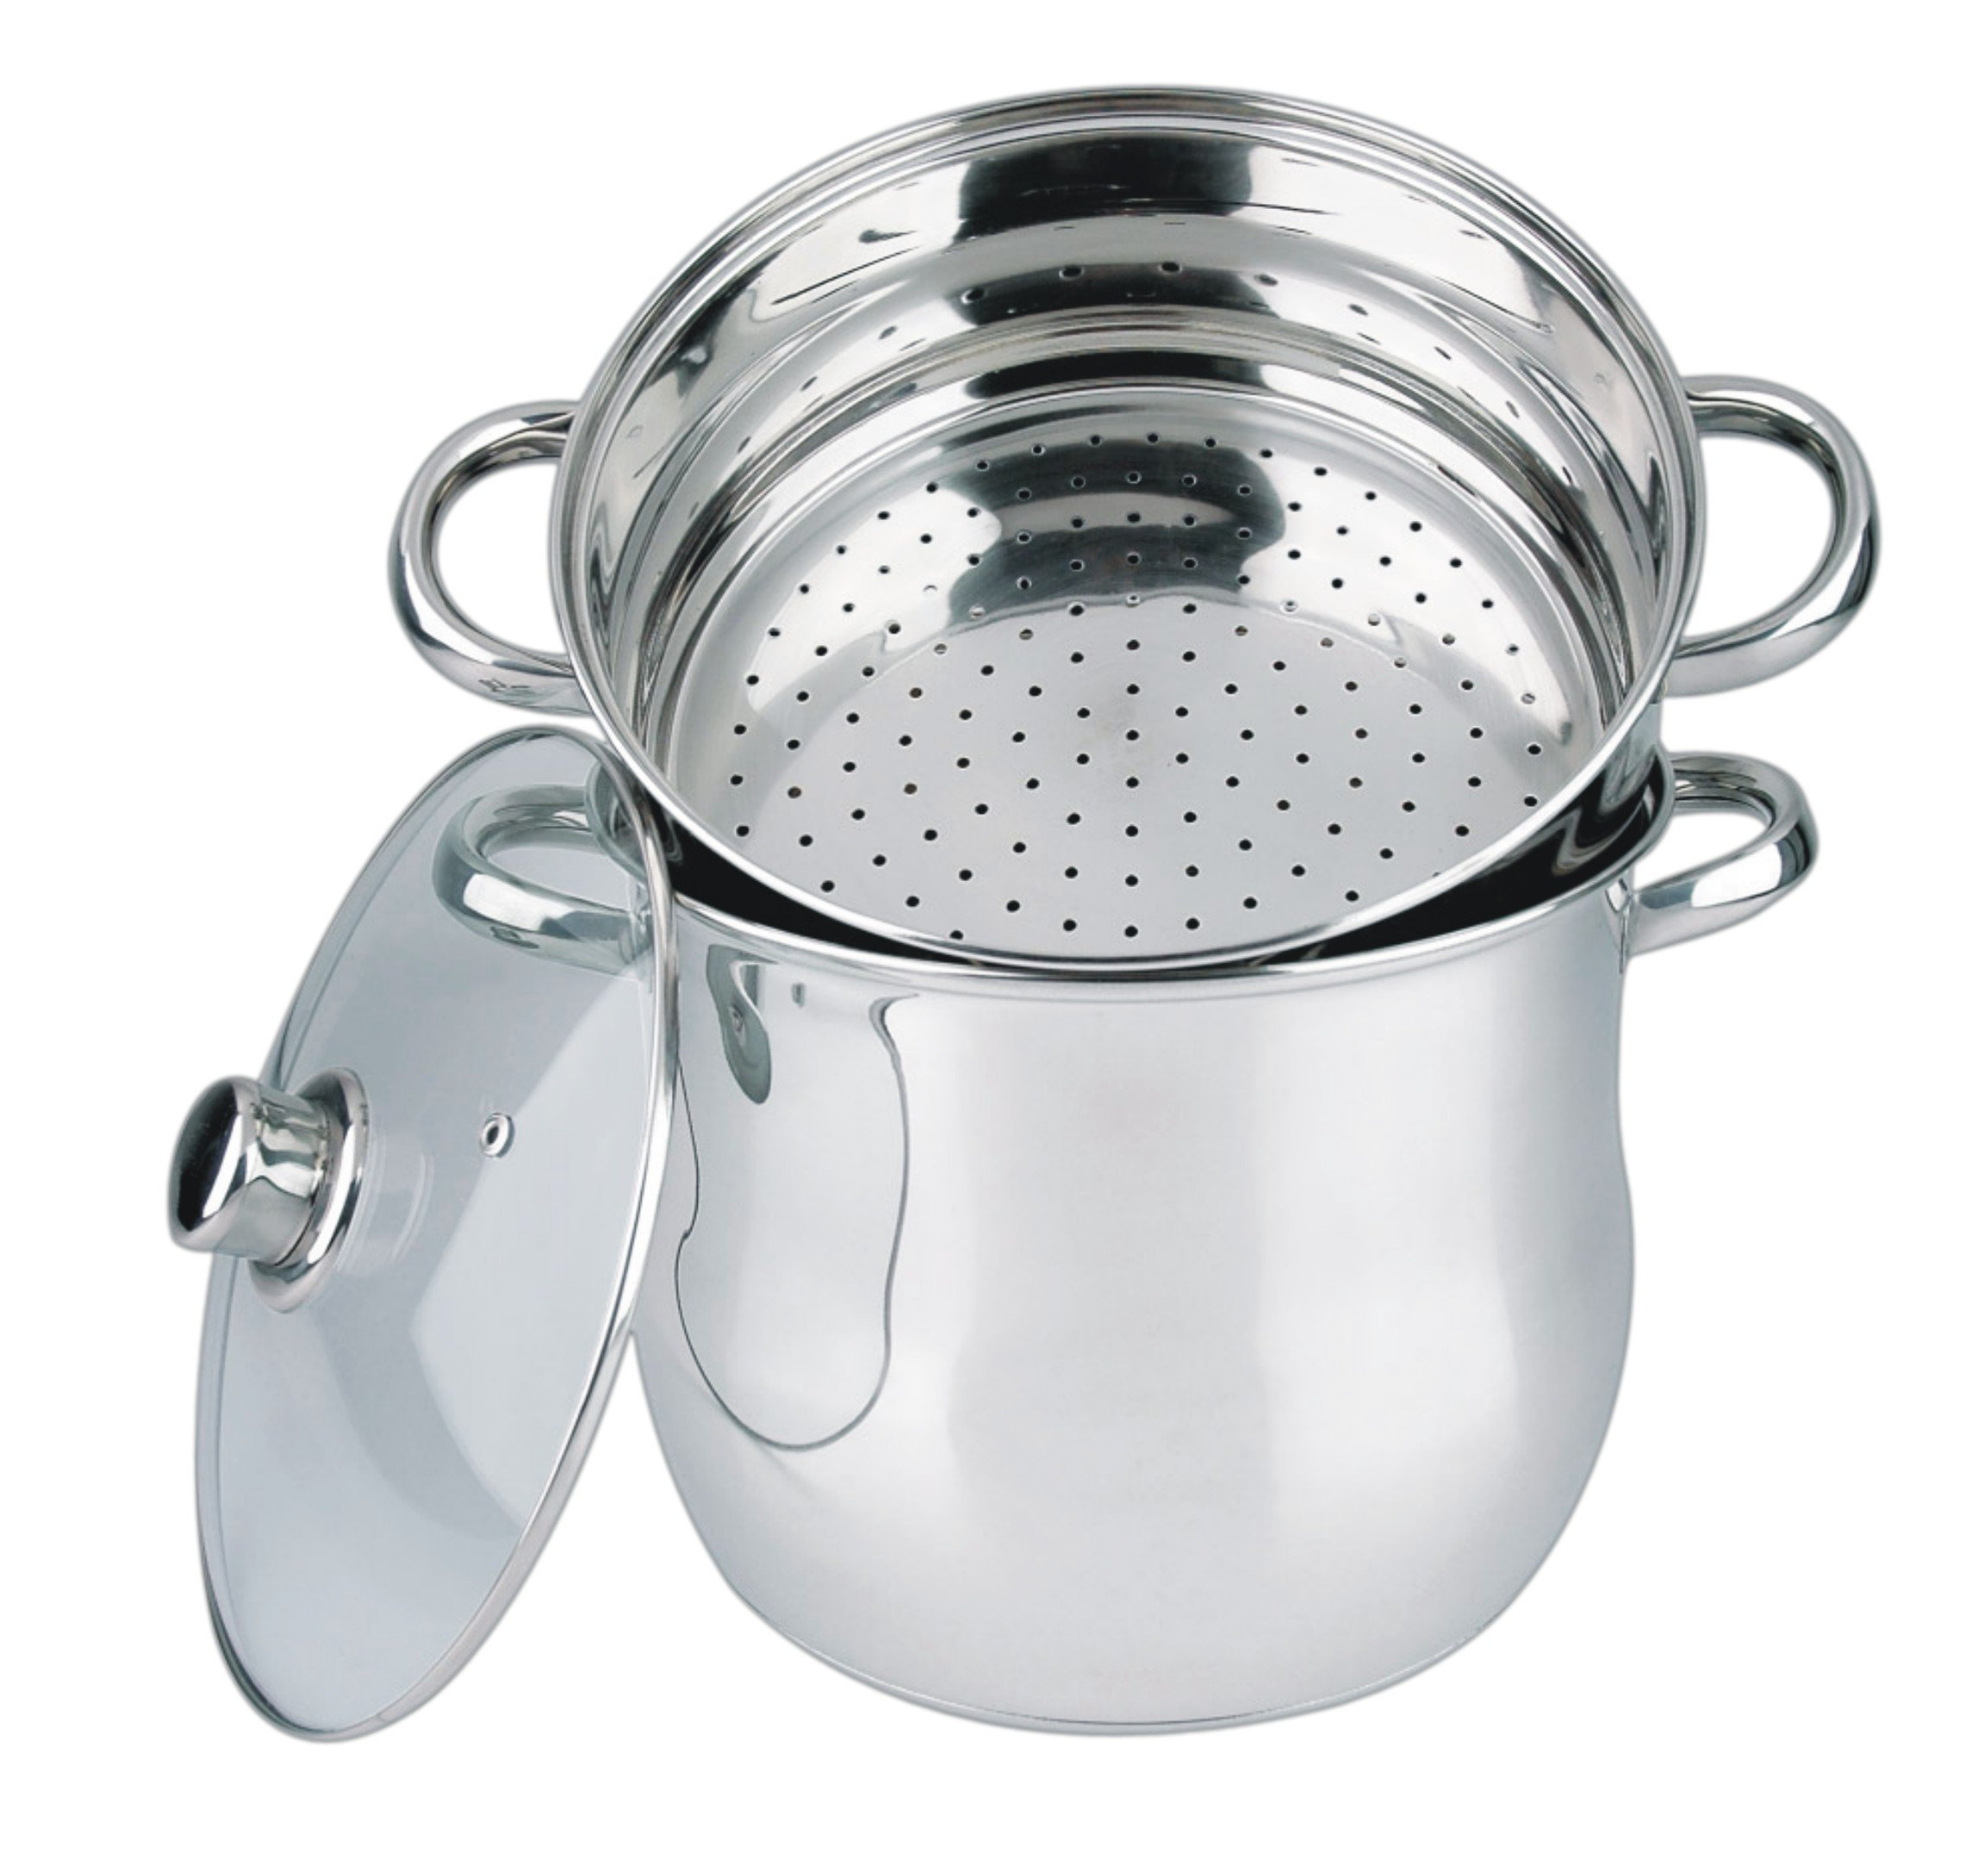 Haussmann Heritage® - 3 Stainless Steel Couscoussiers (Couscous Steamers) – Suitable For All Heat Sources Including…